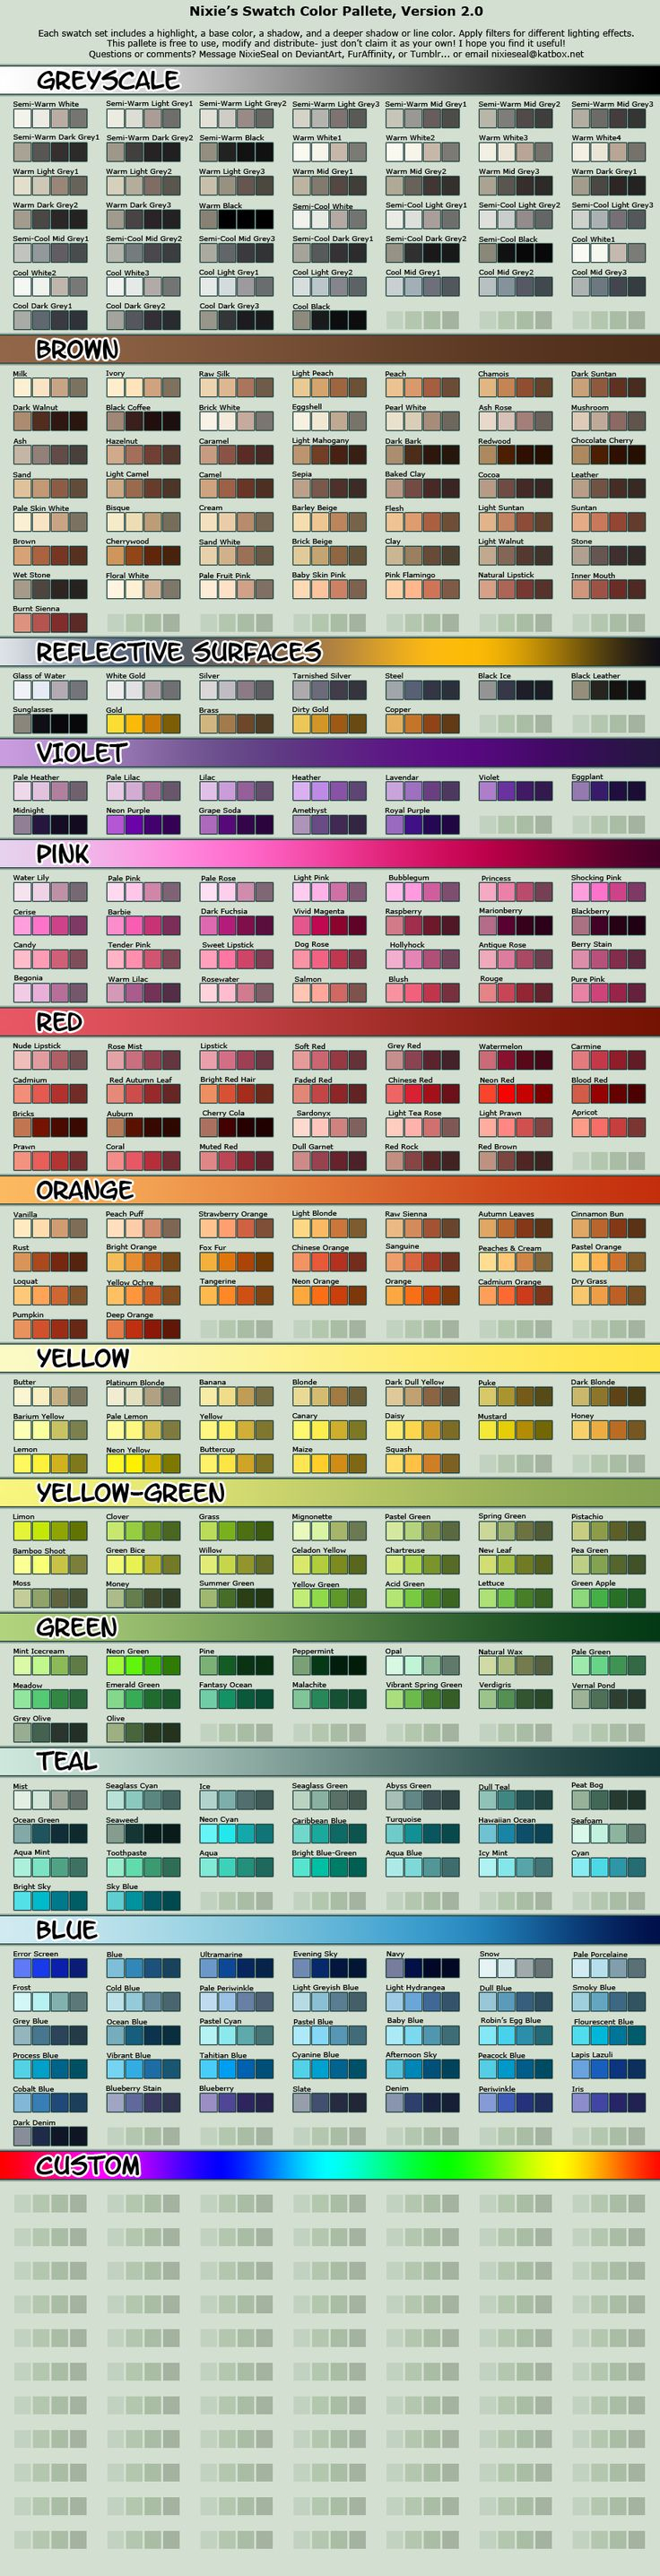 Not my color chart